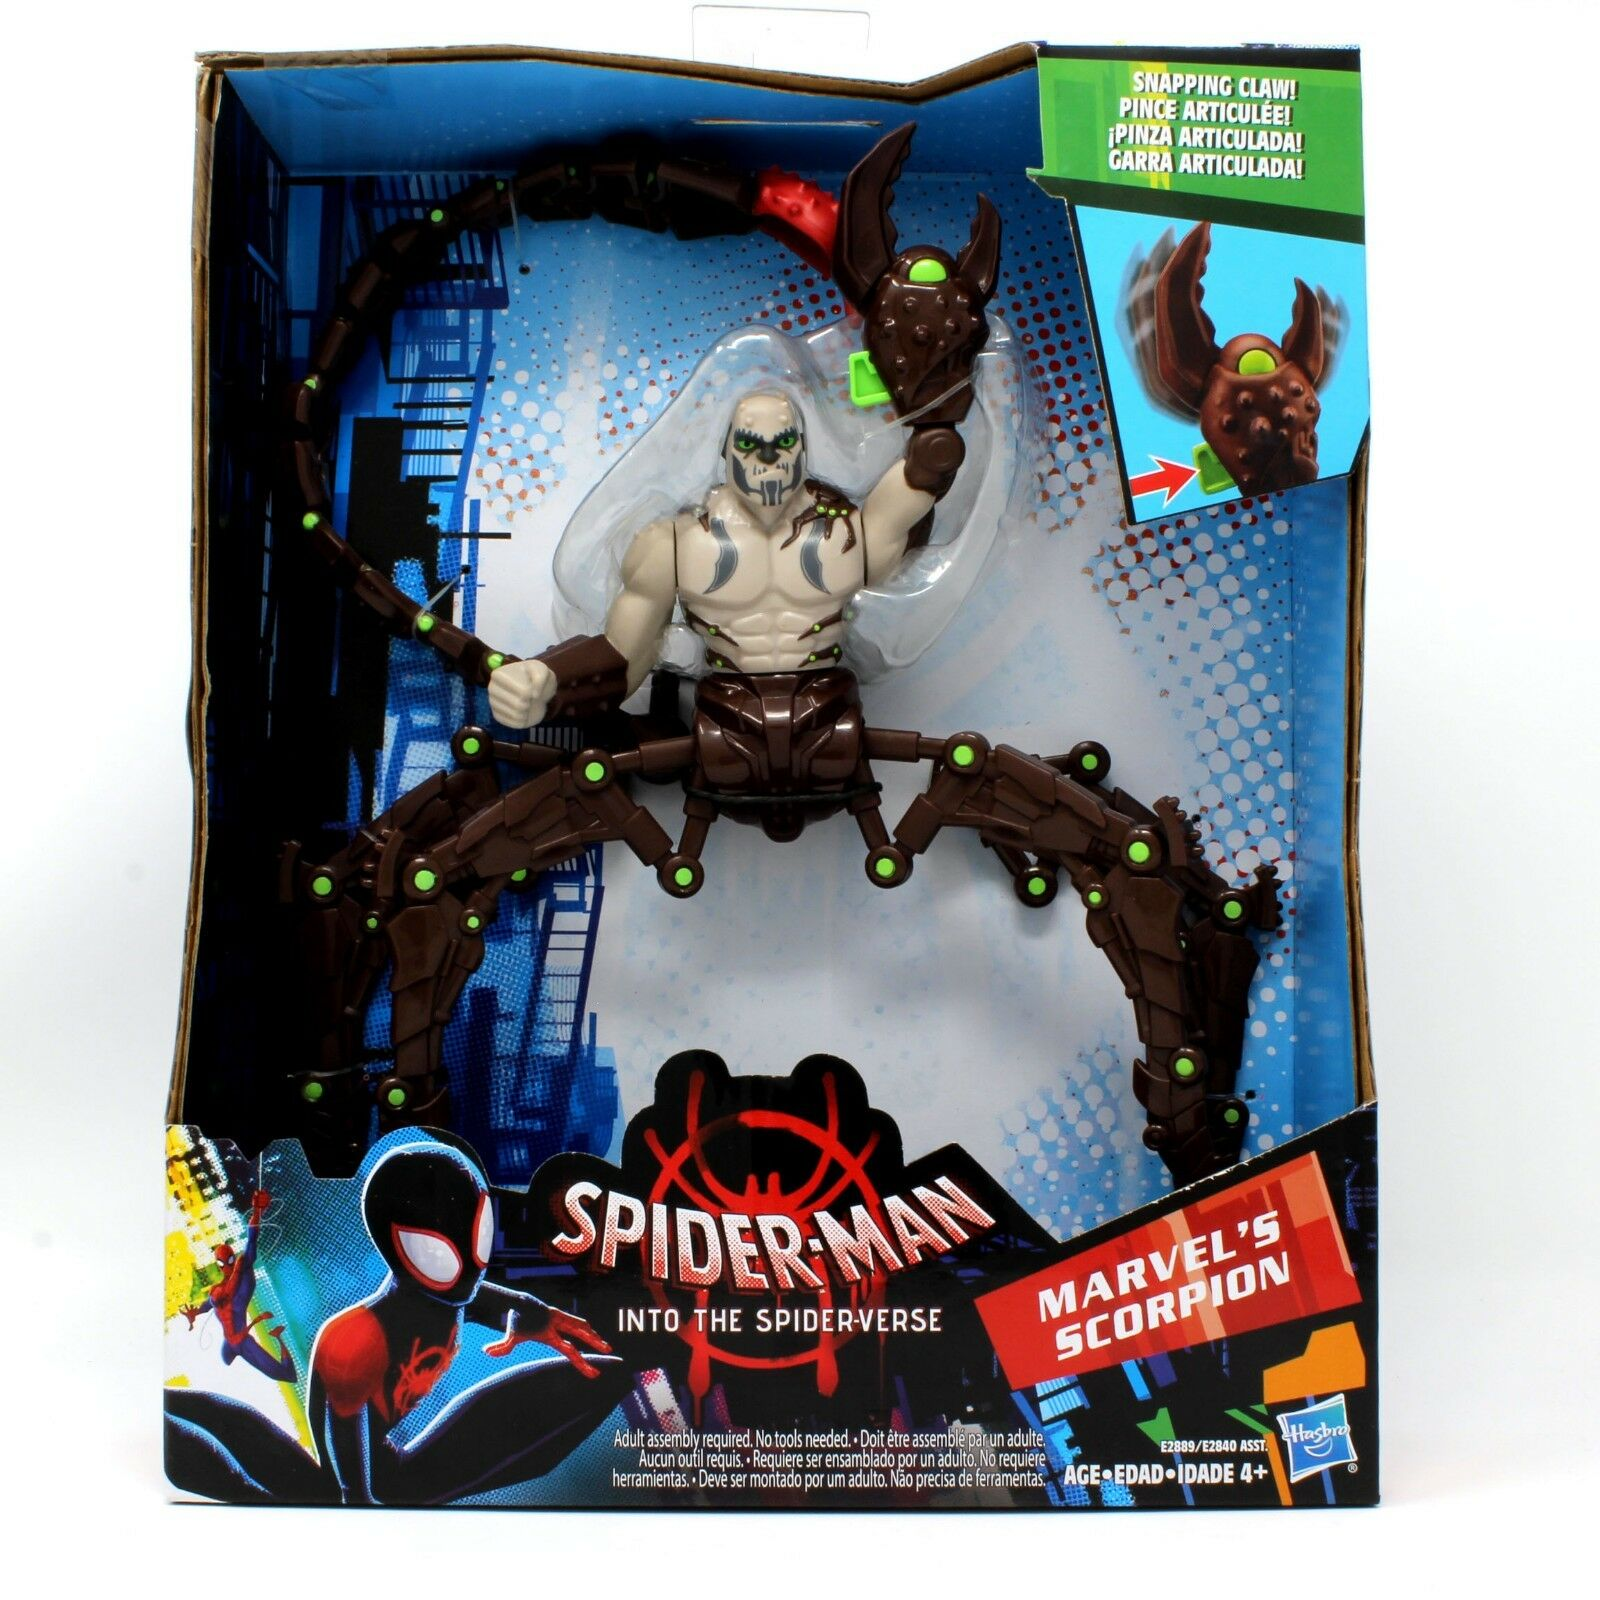 MARVEL'S SCORPION Action Figure 2018 Spider-Man Into the Spider-Verse 7.5  Inch